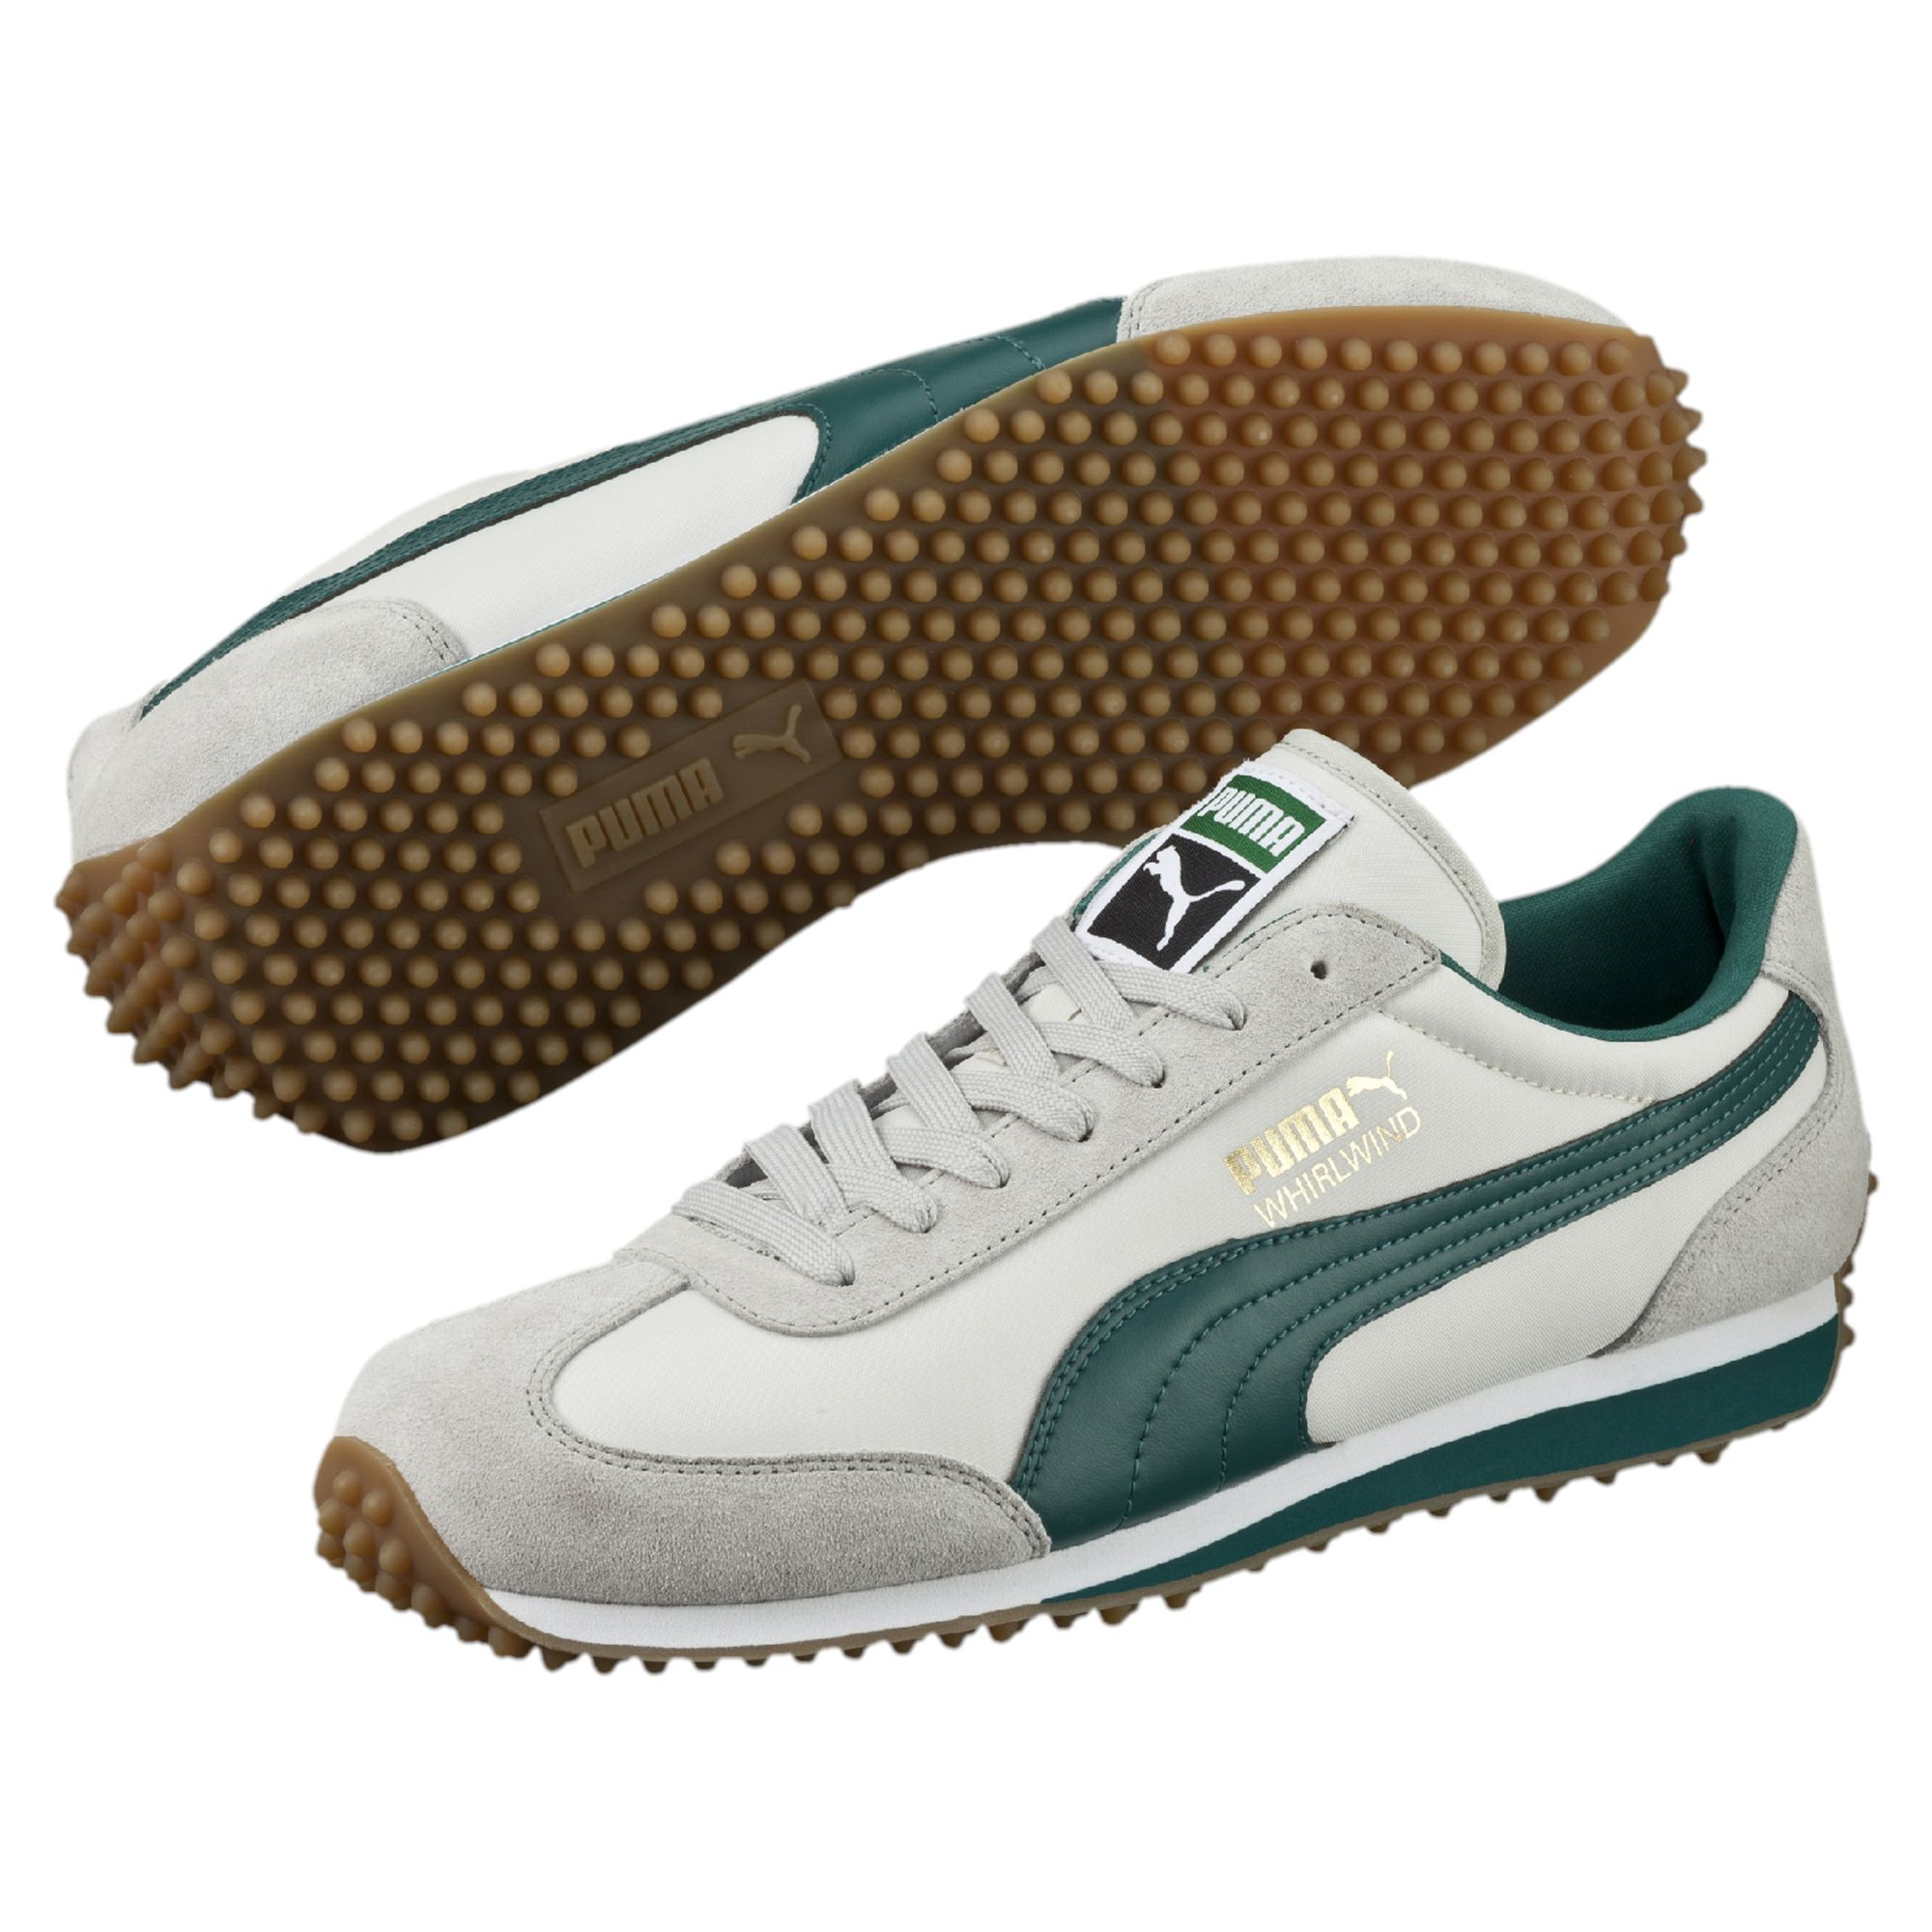 Lyst - PUMA Whirlwind Classic Men s Sneakers in Green for Men c1abfaf47